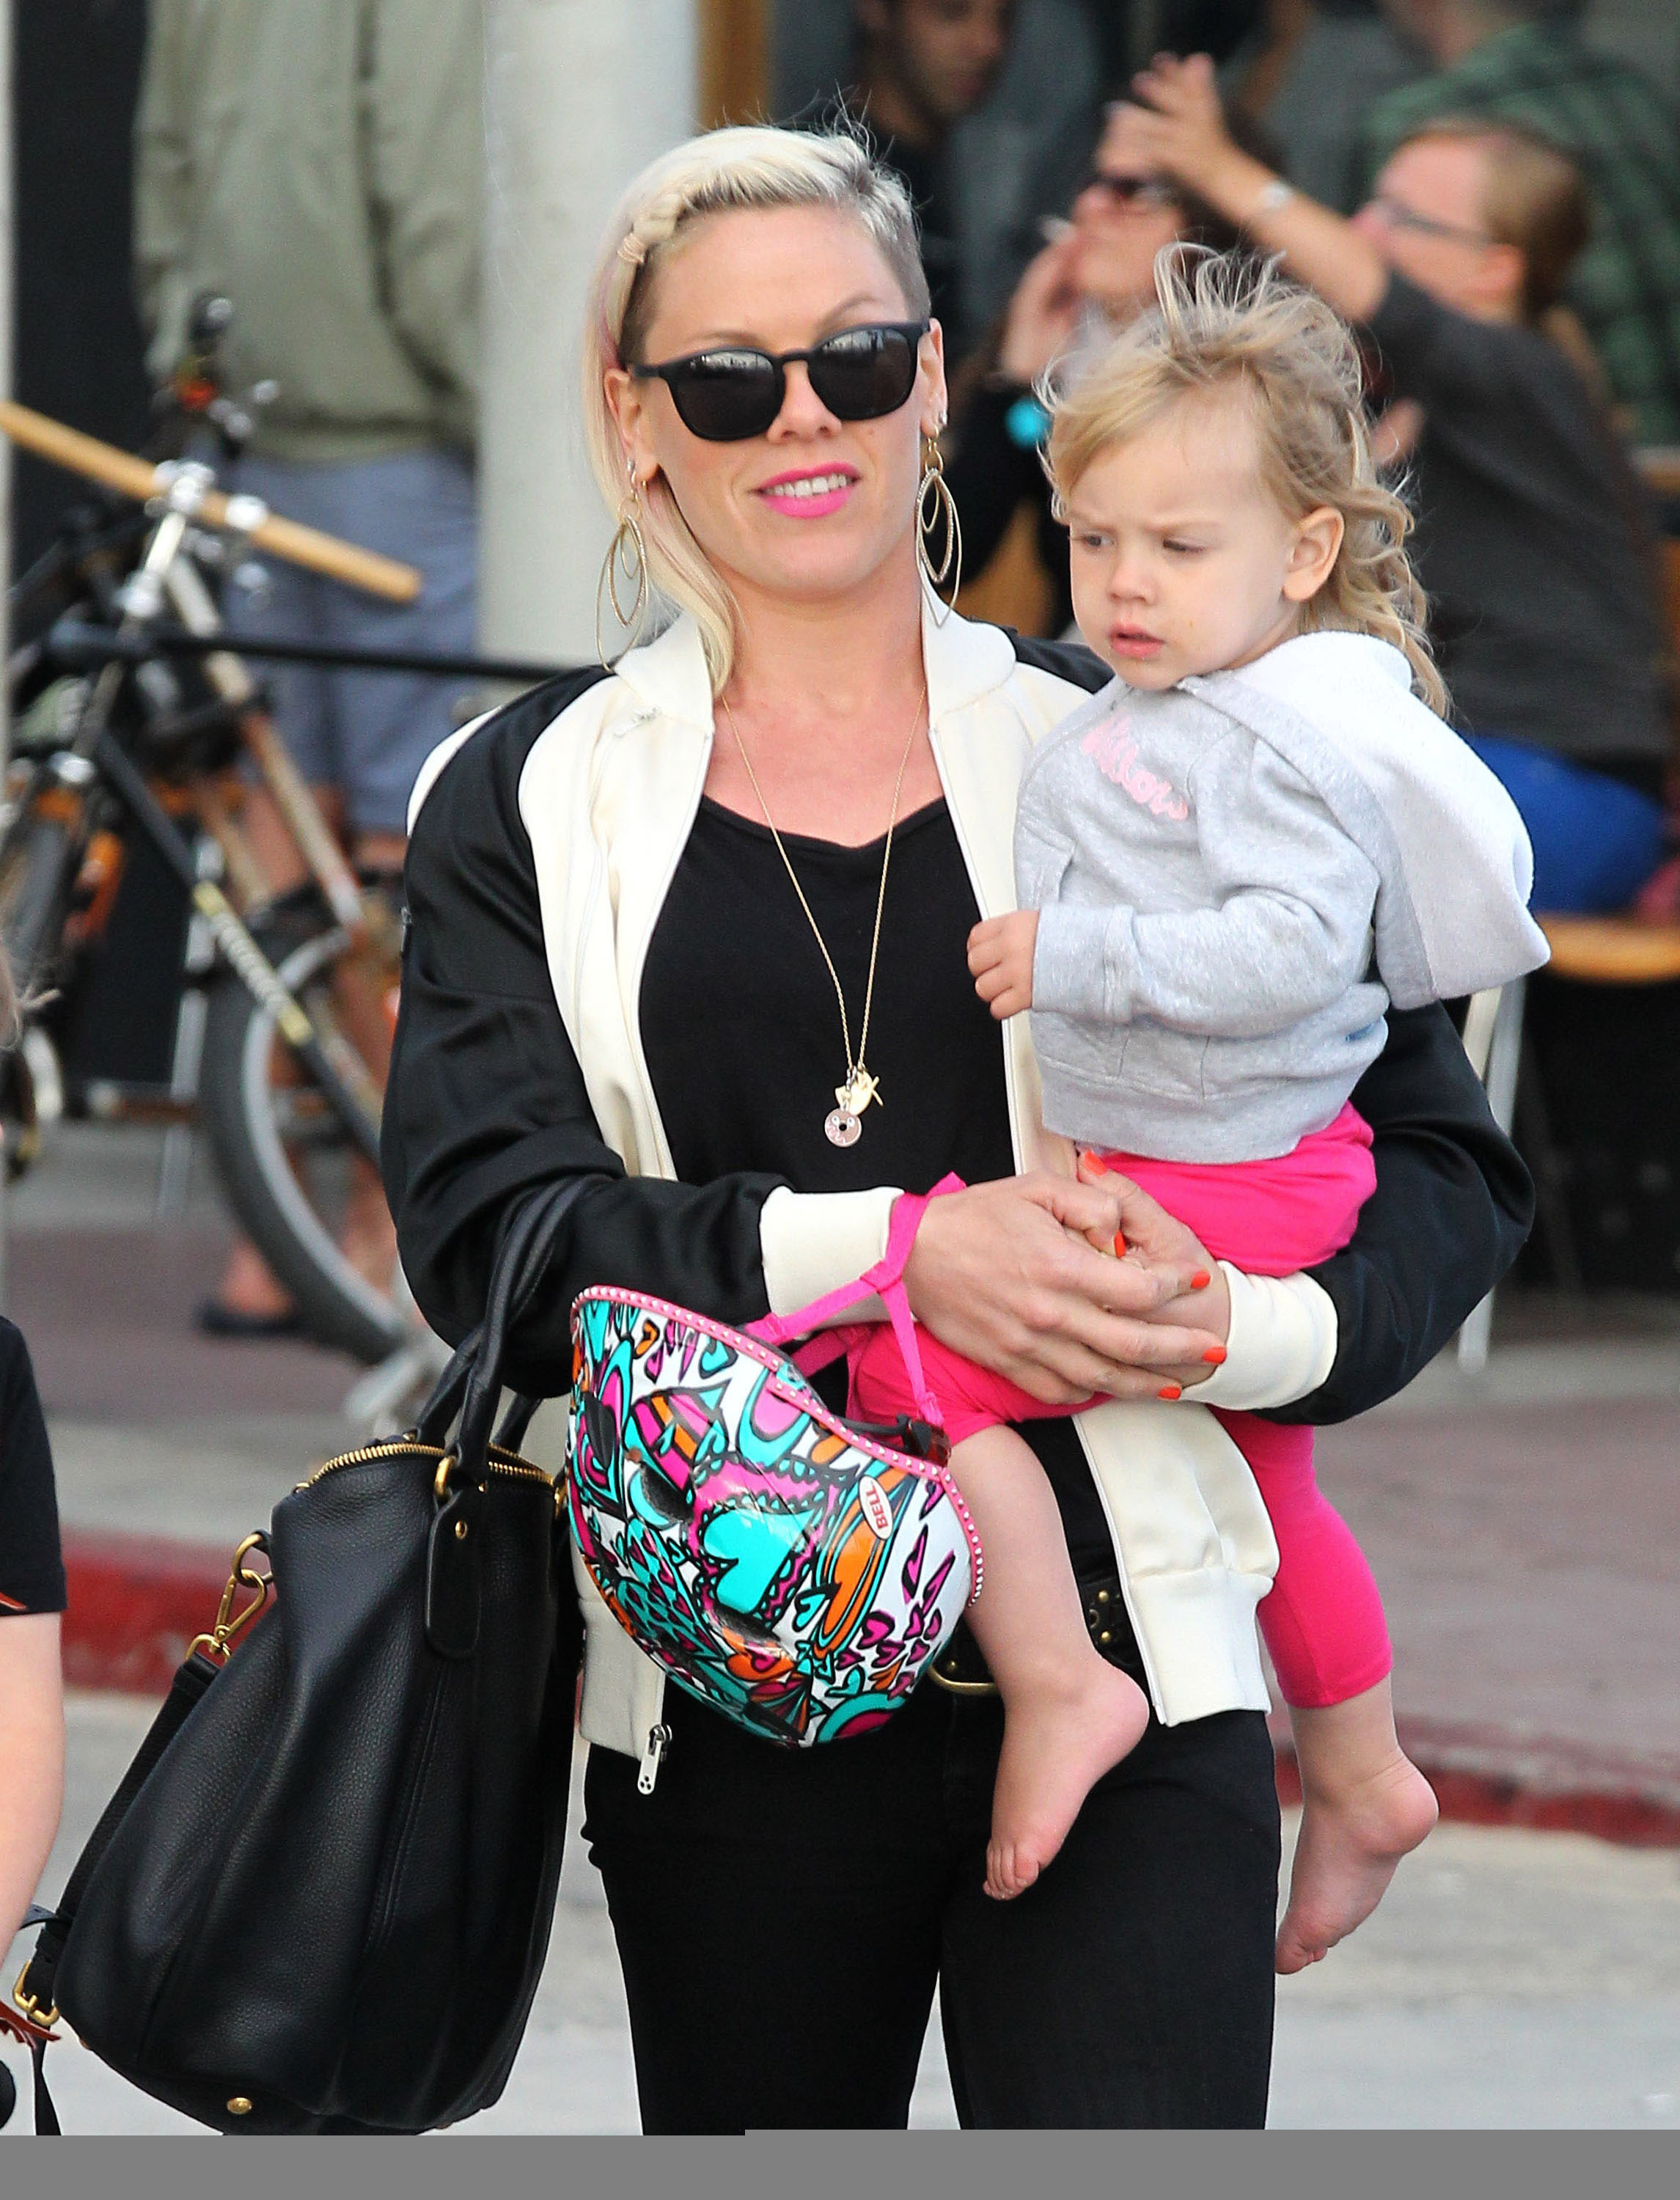 pink new look extensions shaved head daughter willow carey hart venice bike